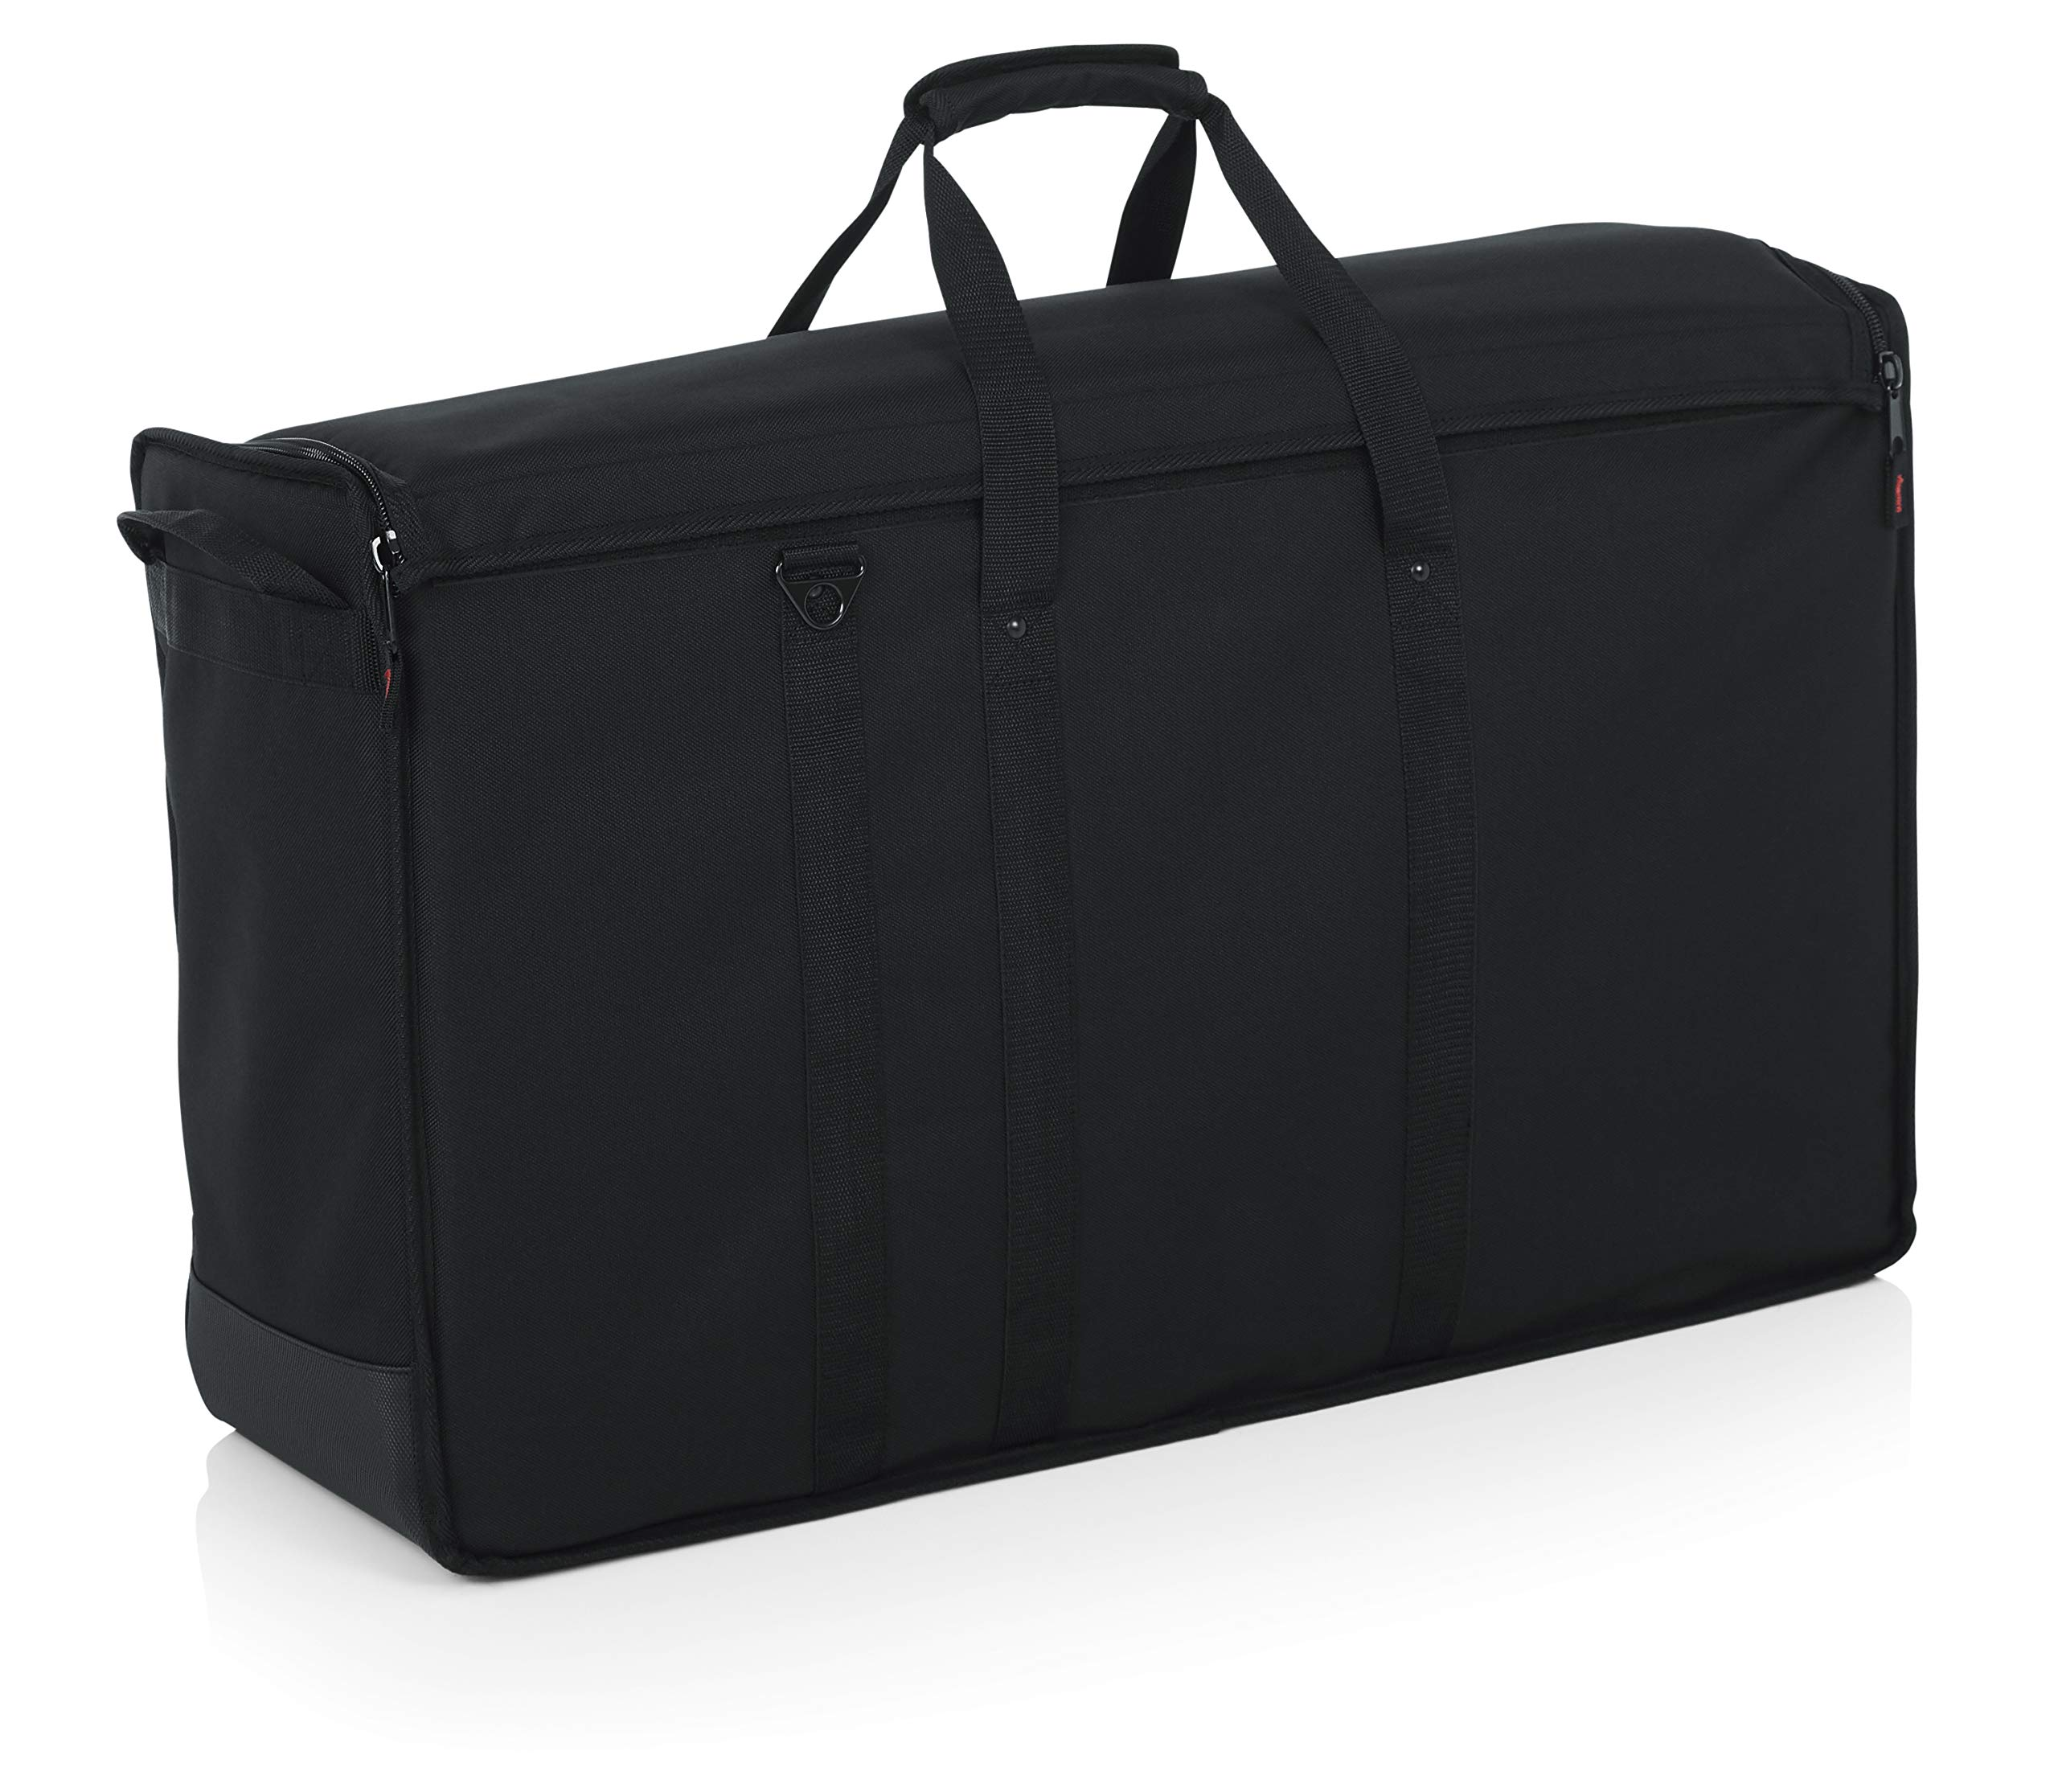 Gator Cases Padded Nylon Dual Carry Tote Bag for Transporting (2) LCD Screens, Monitors and TVs Between 27'' - 32''; (G-LCD-TOTE-MDX2) by Gator (Image #10)